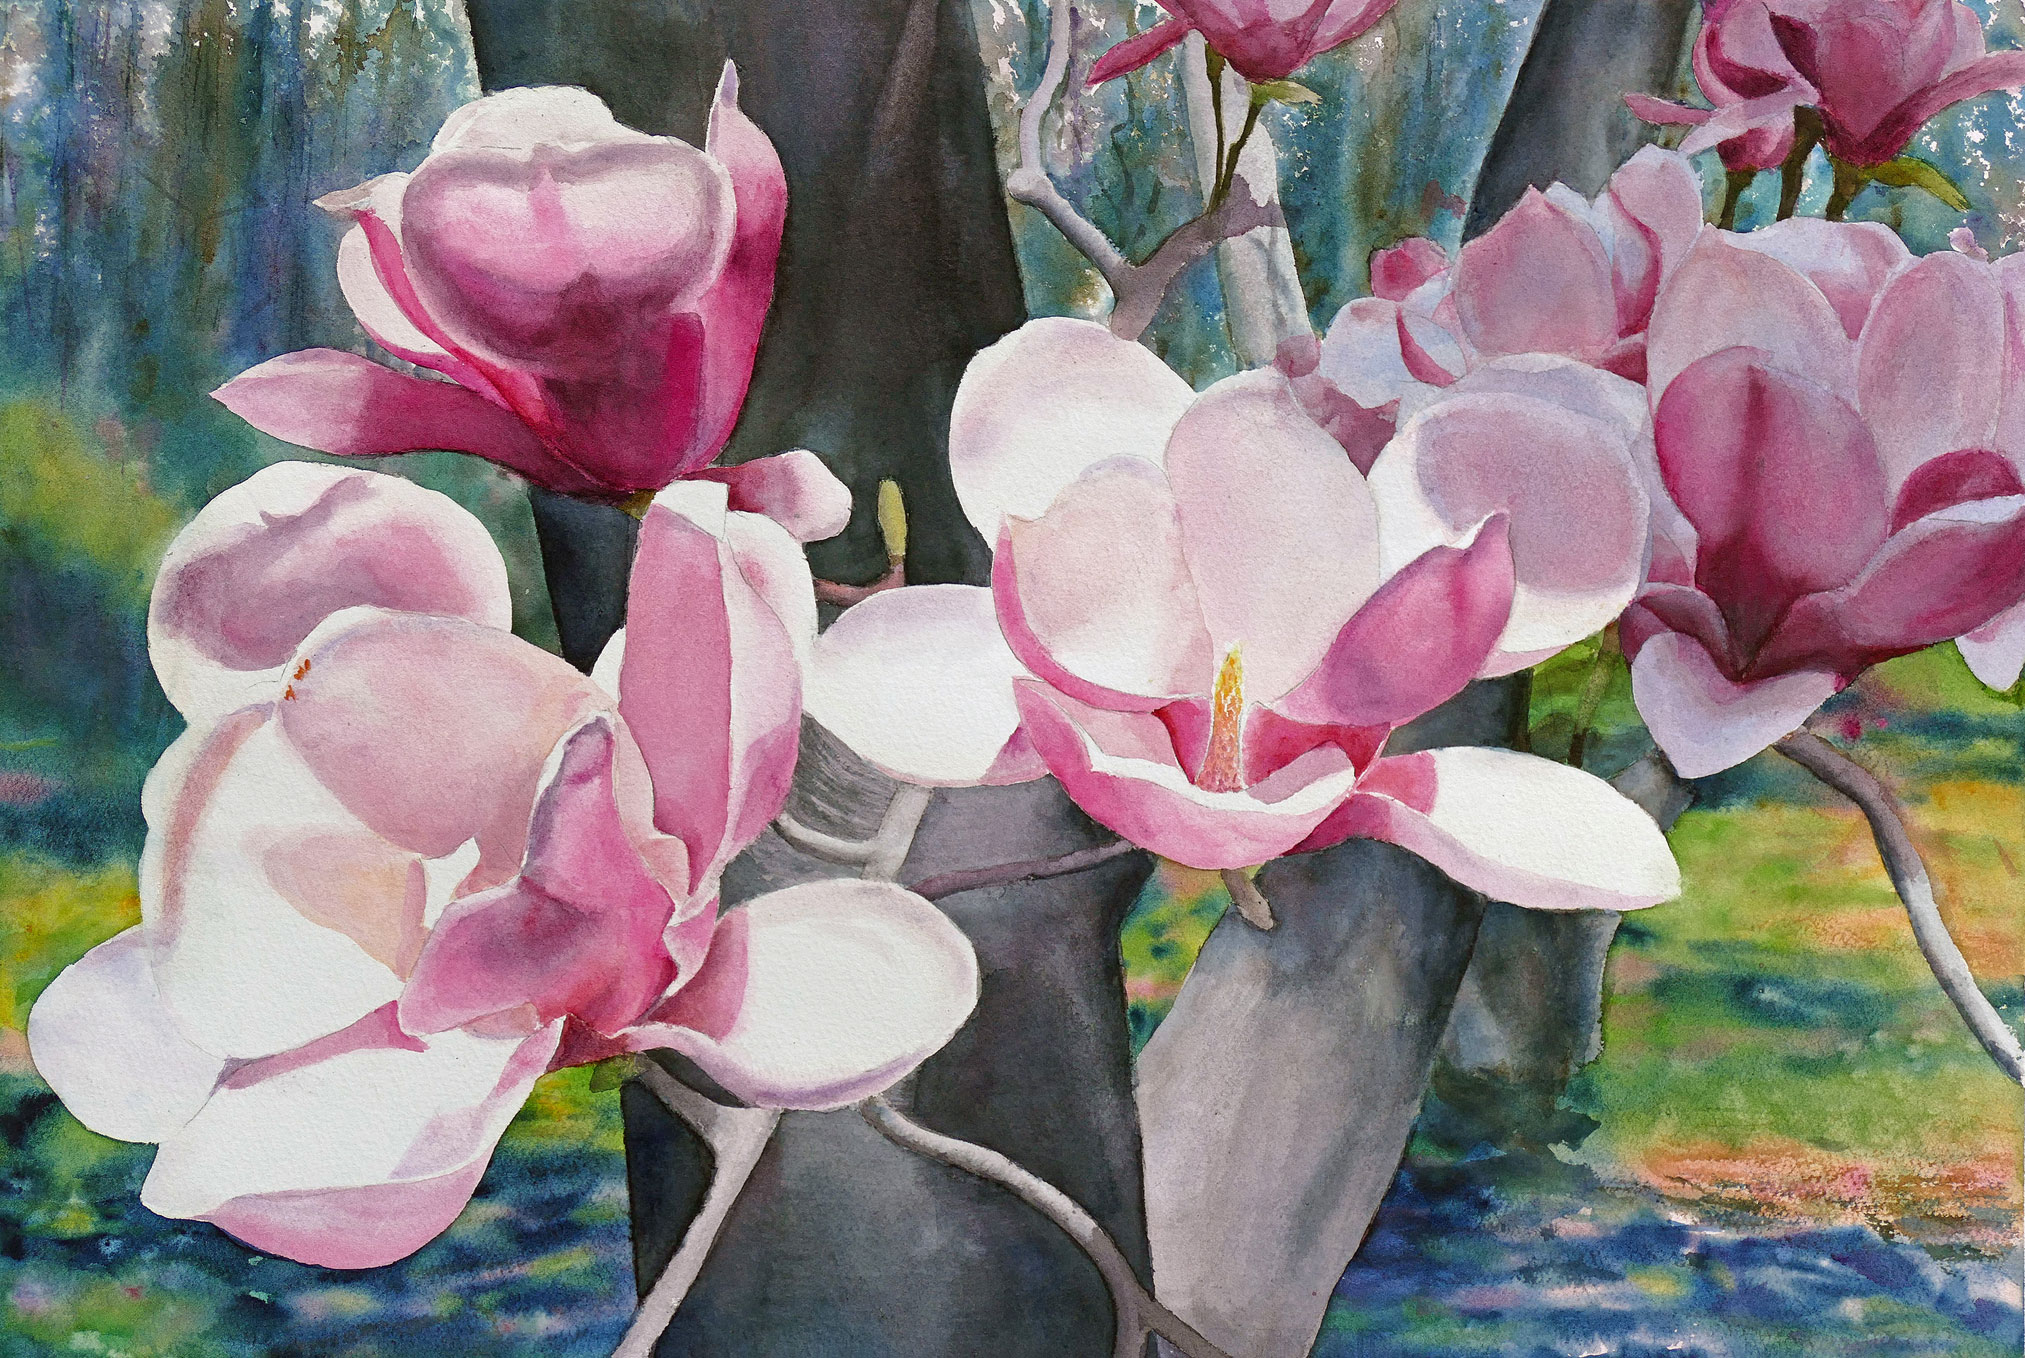 Magnolias on Parade, watercolor painting by Elizabeth Burin, floral, botanical, trees